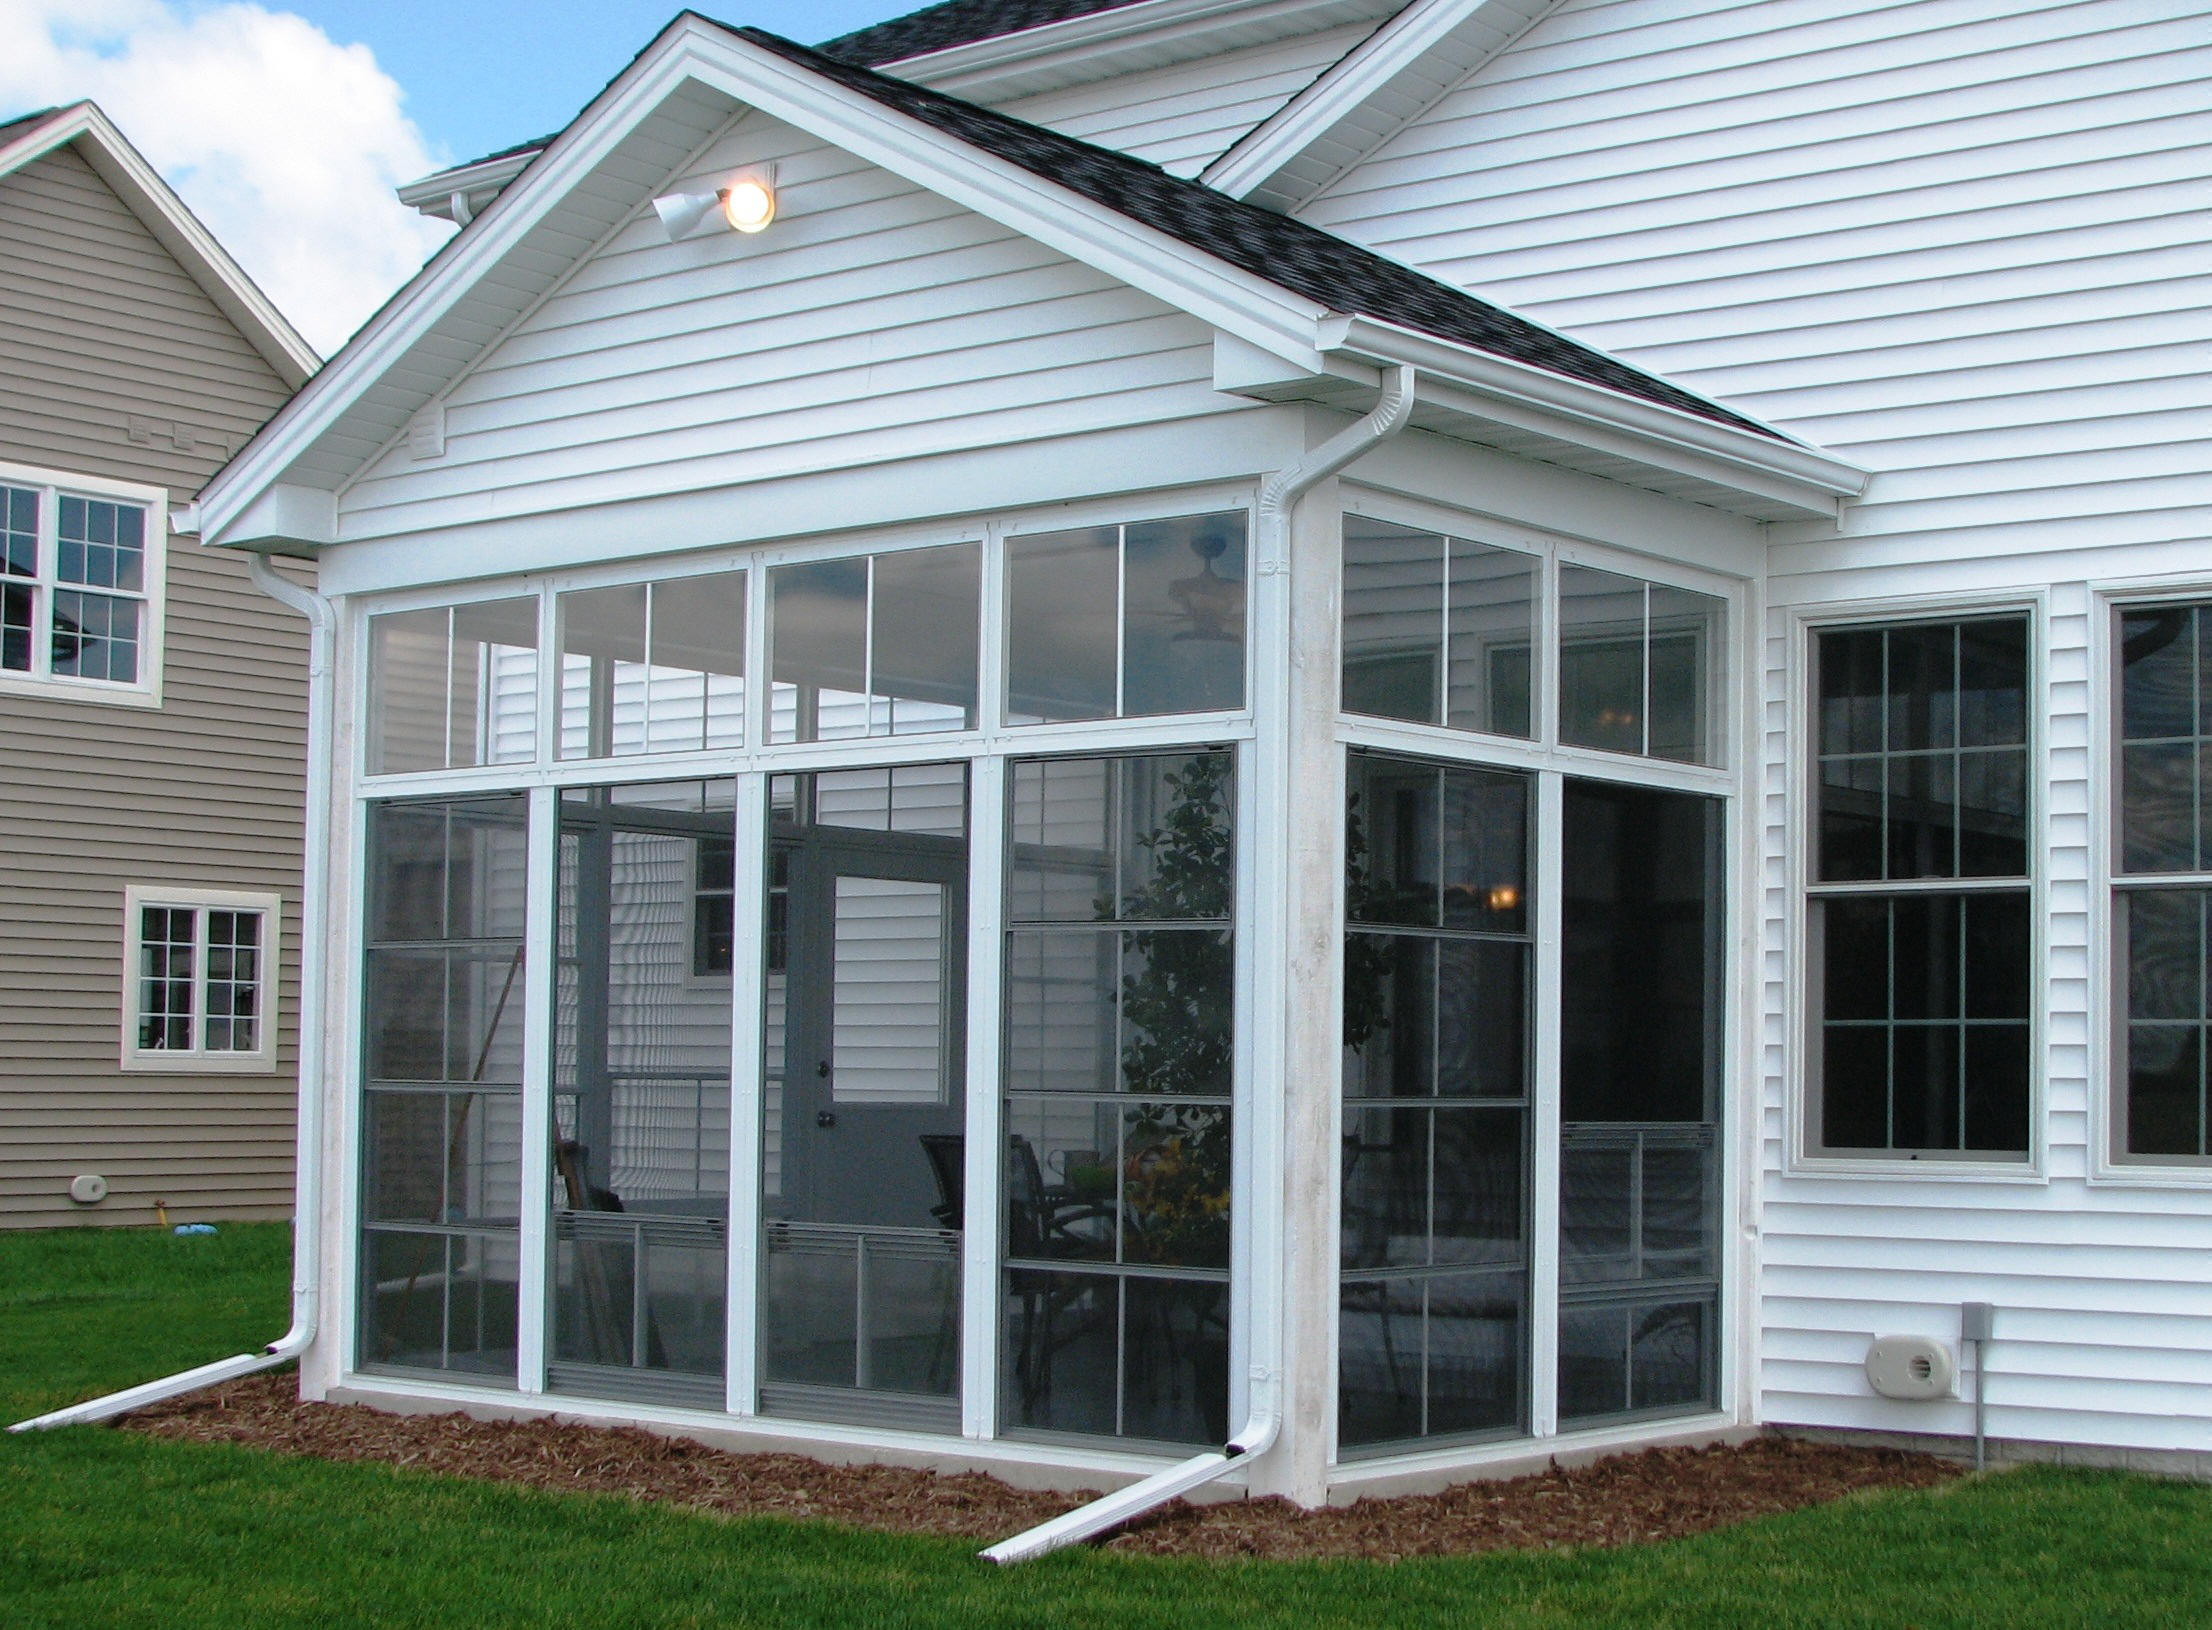 4 Track Stackable Vinyl Windows with fixed transoms